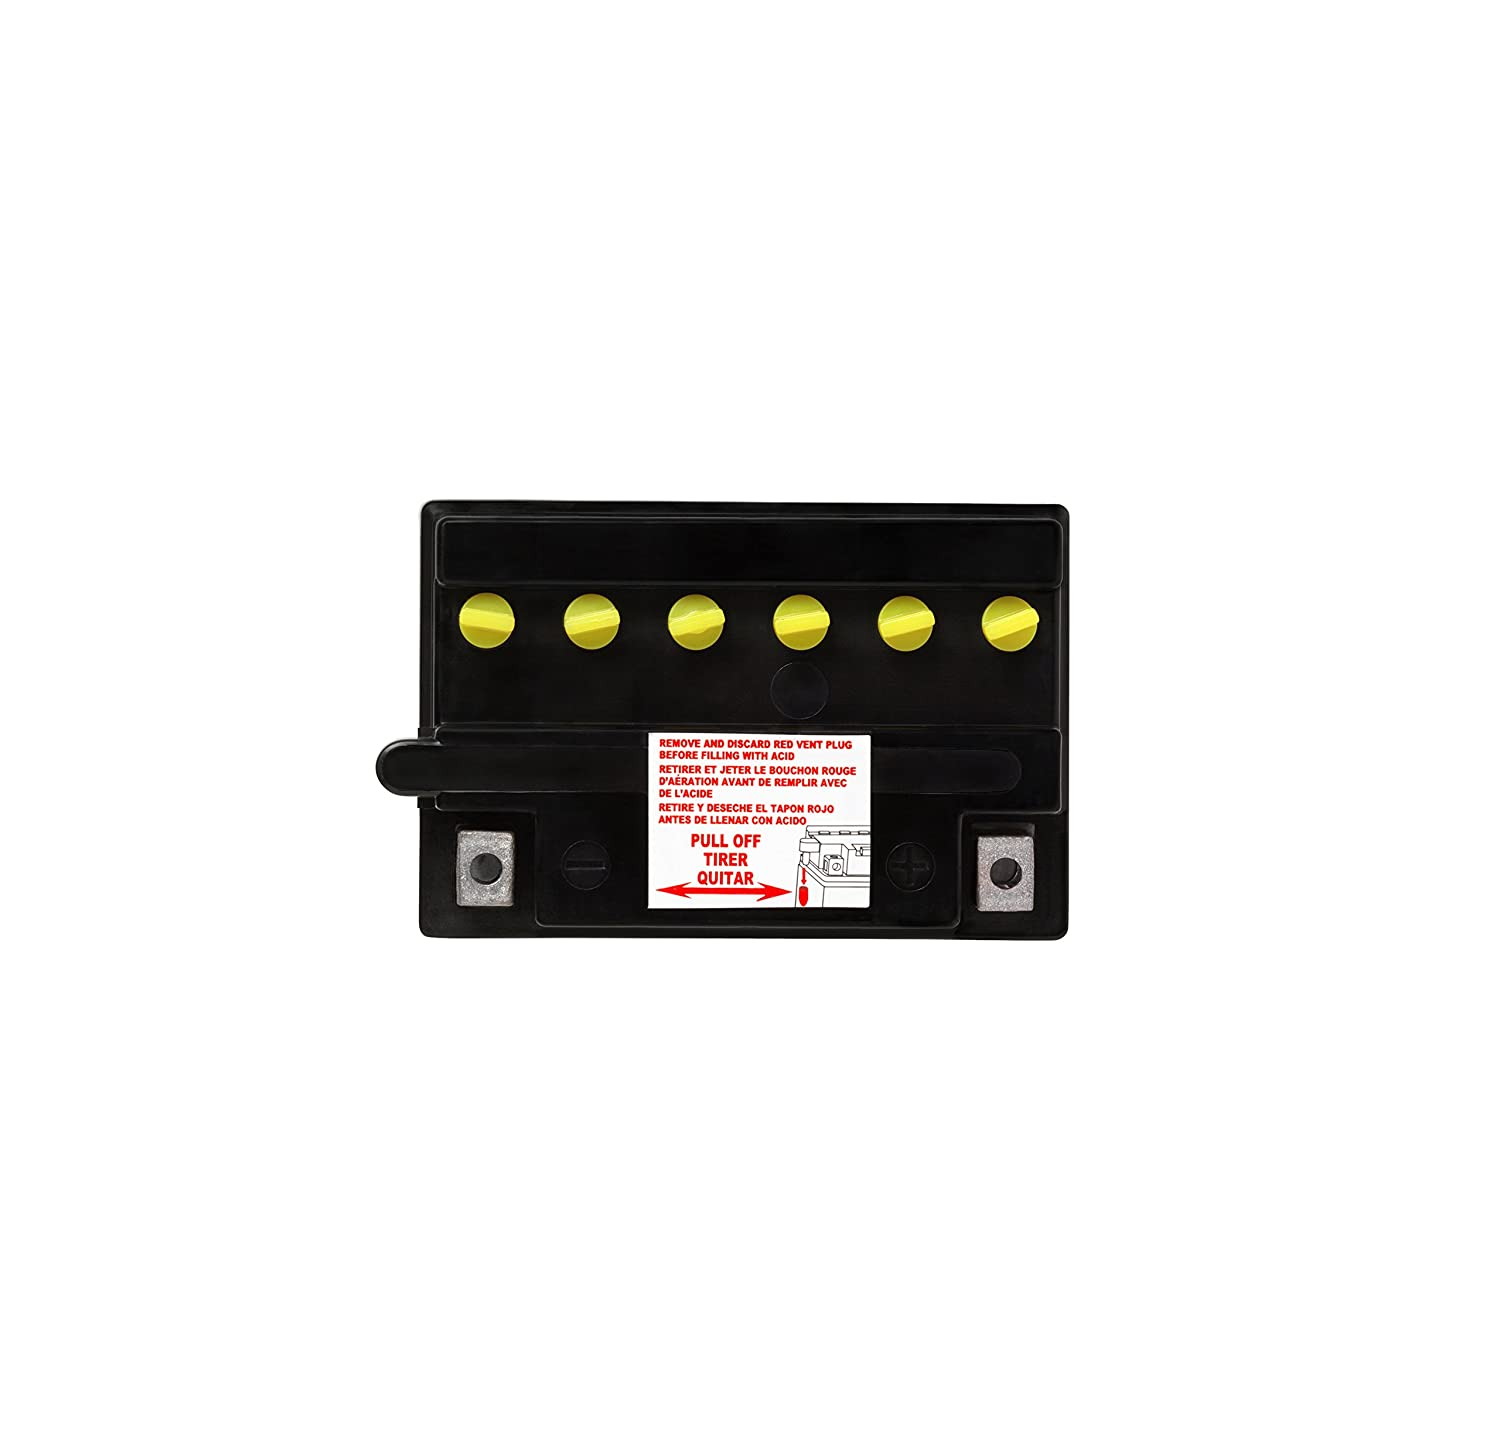 Acdelco Ab10la2 Specialty Conventional Powersports Jis Electrical Panel Durante Electric Inc Pa 10l A2 Battery Automotive